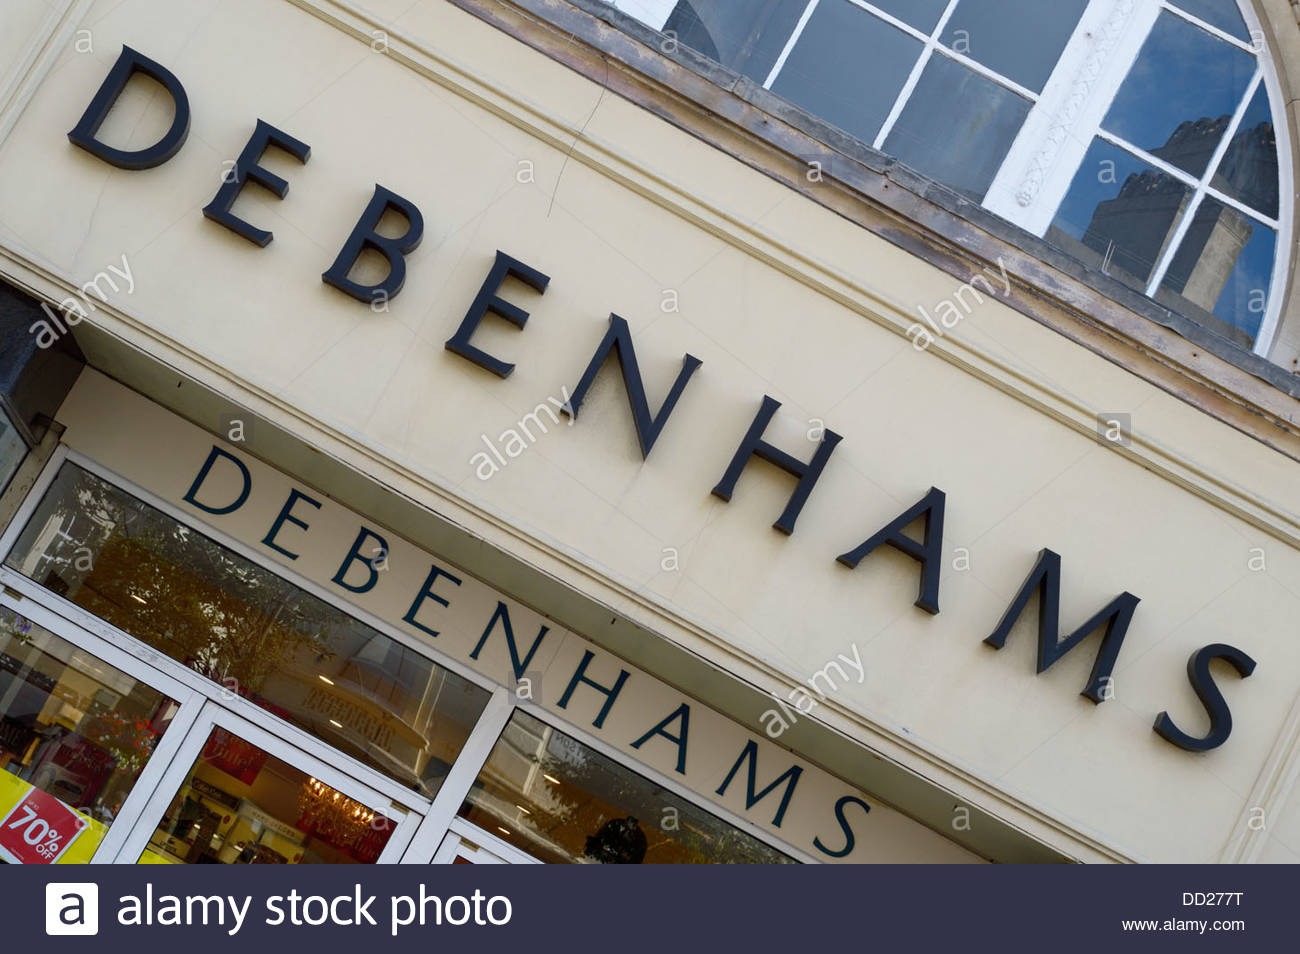 Debenhams sign above the shop doors in Hastings, East Sussex, England - Stock Image